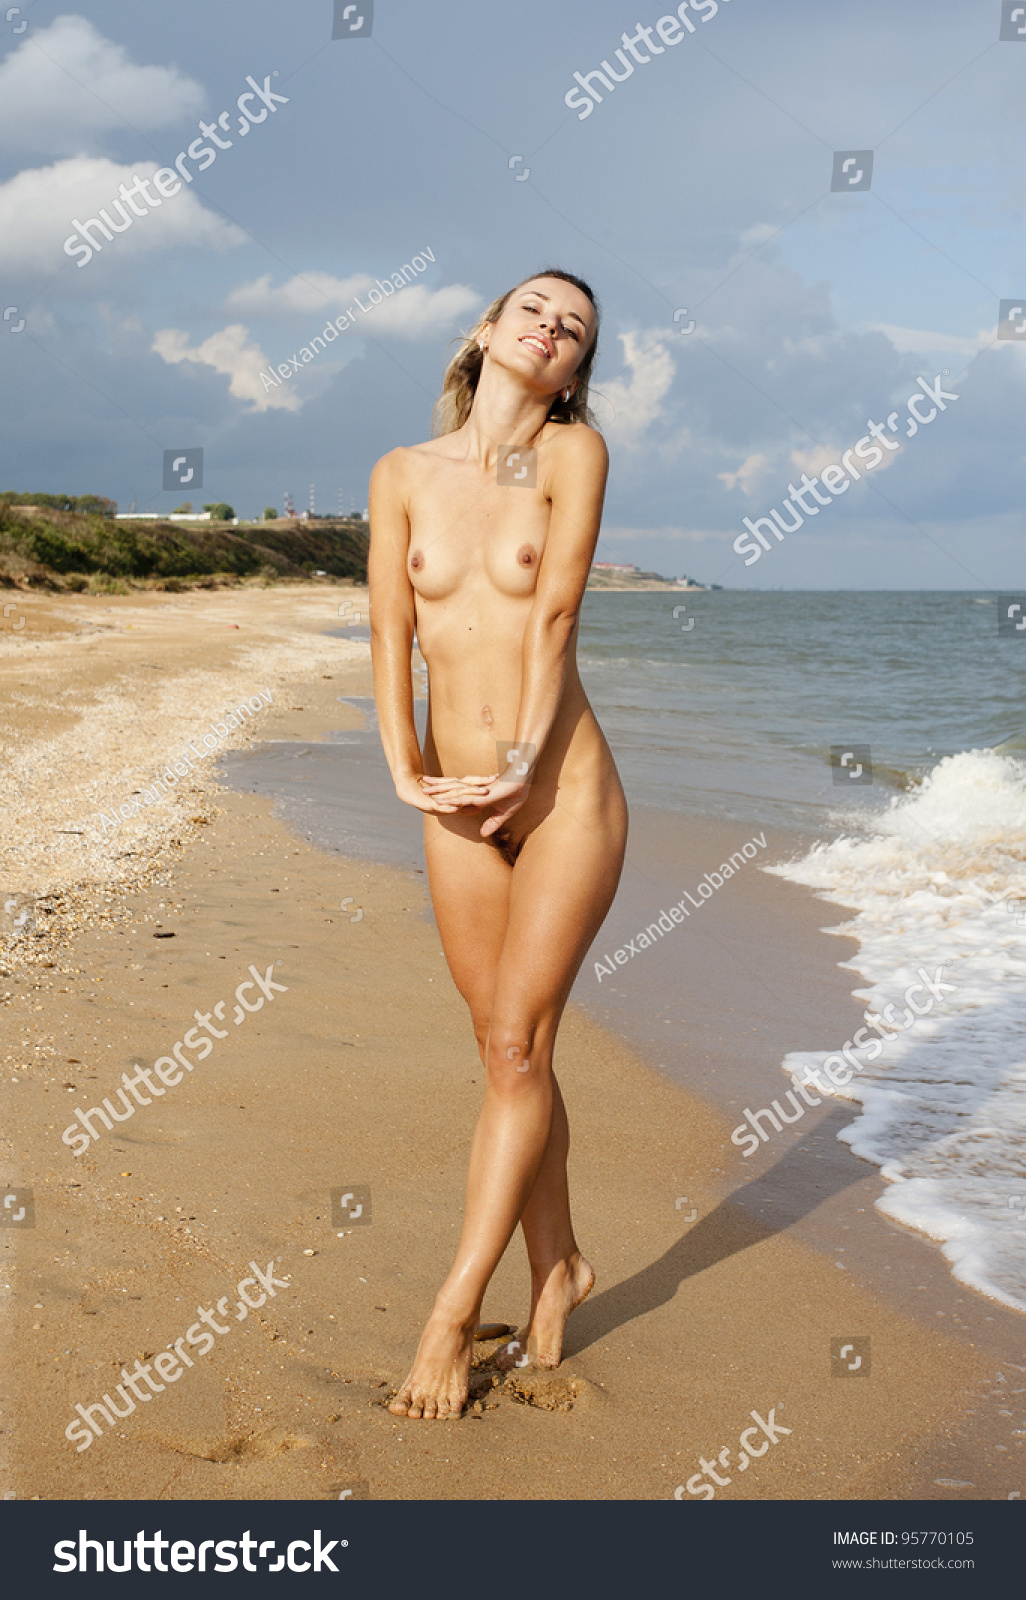 Apologise, but, Female musicians beach nude something